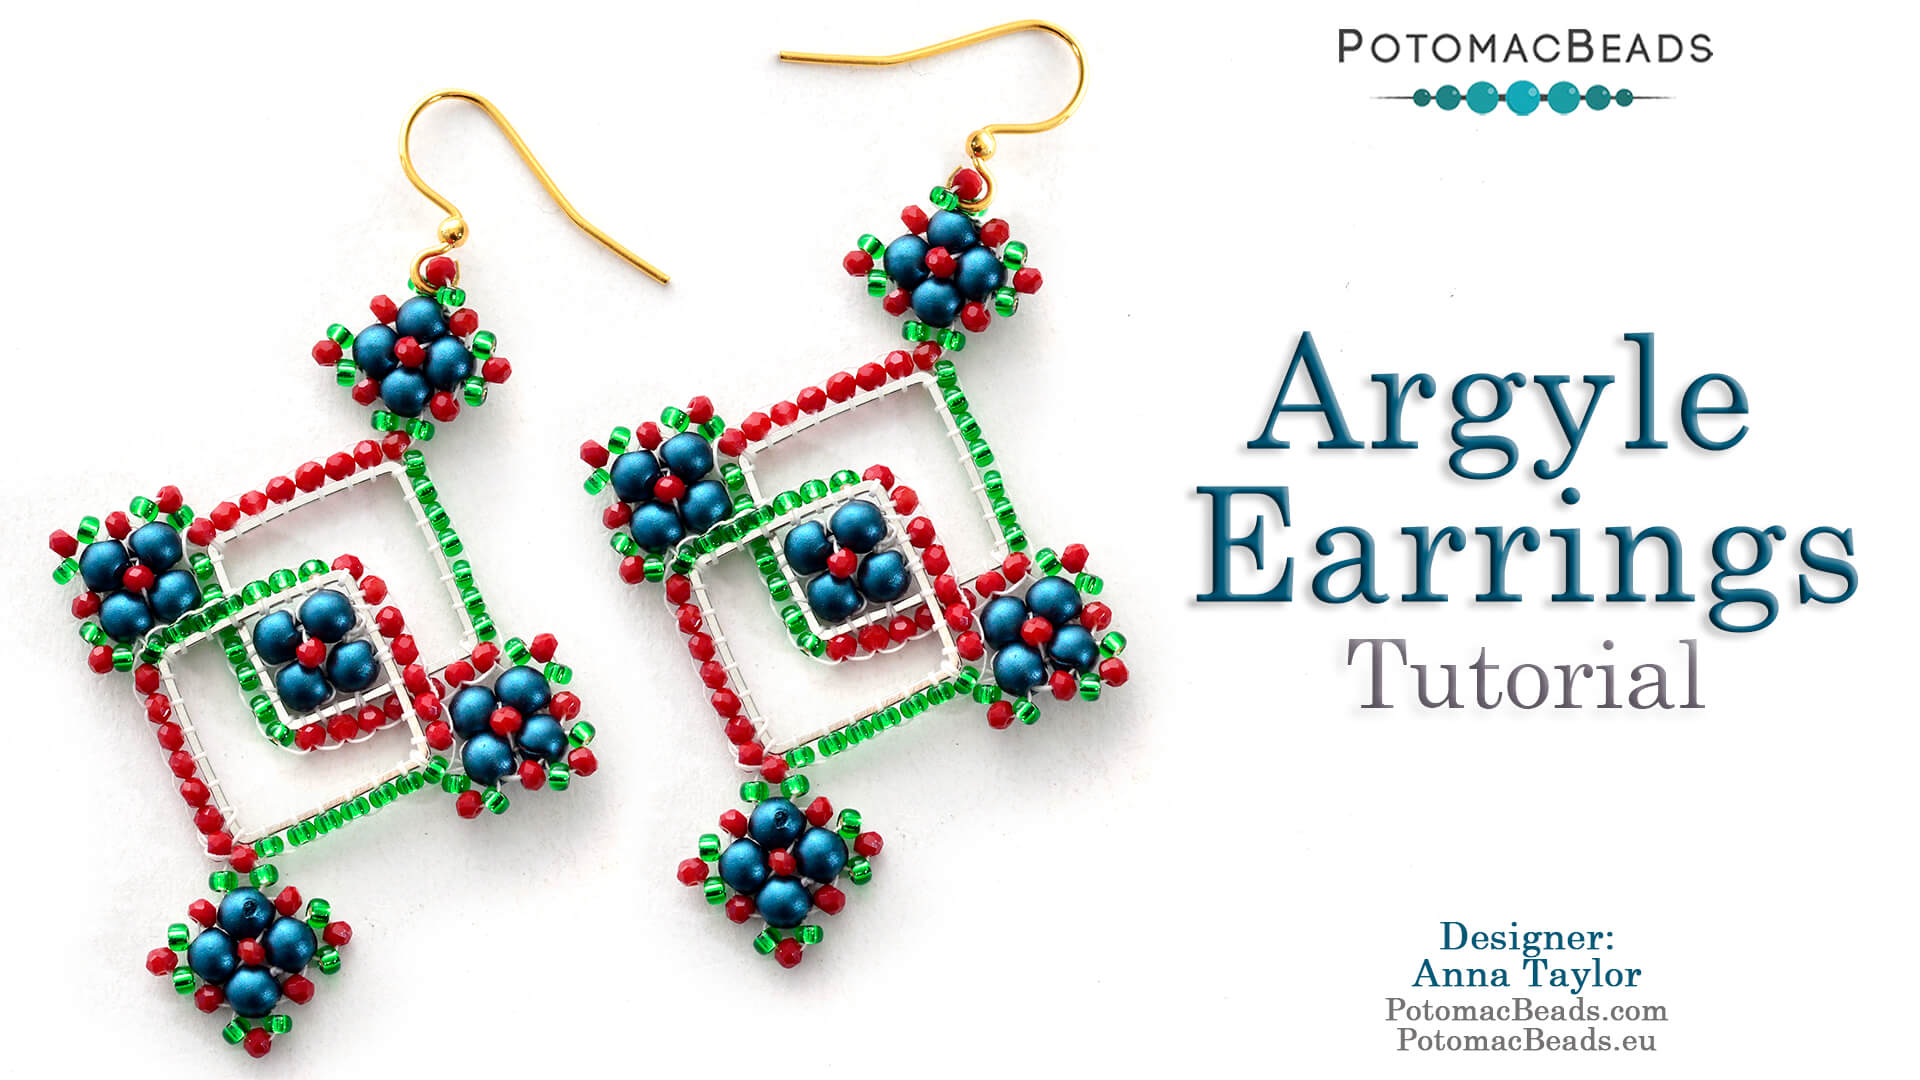 How to Bead Jewelry / Beading Tutorials & Jewel Making Videos / Earring Projects / Argyle Earrings Tutorial